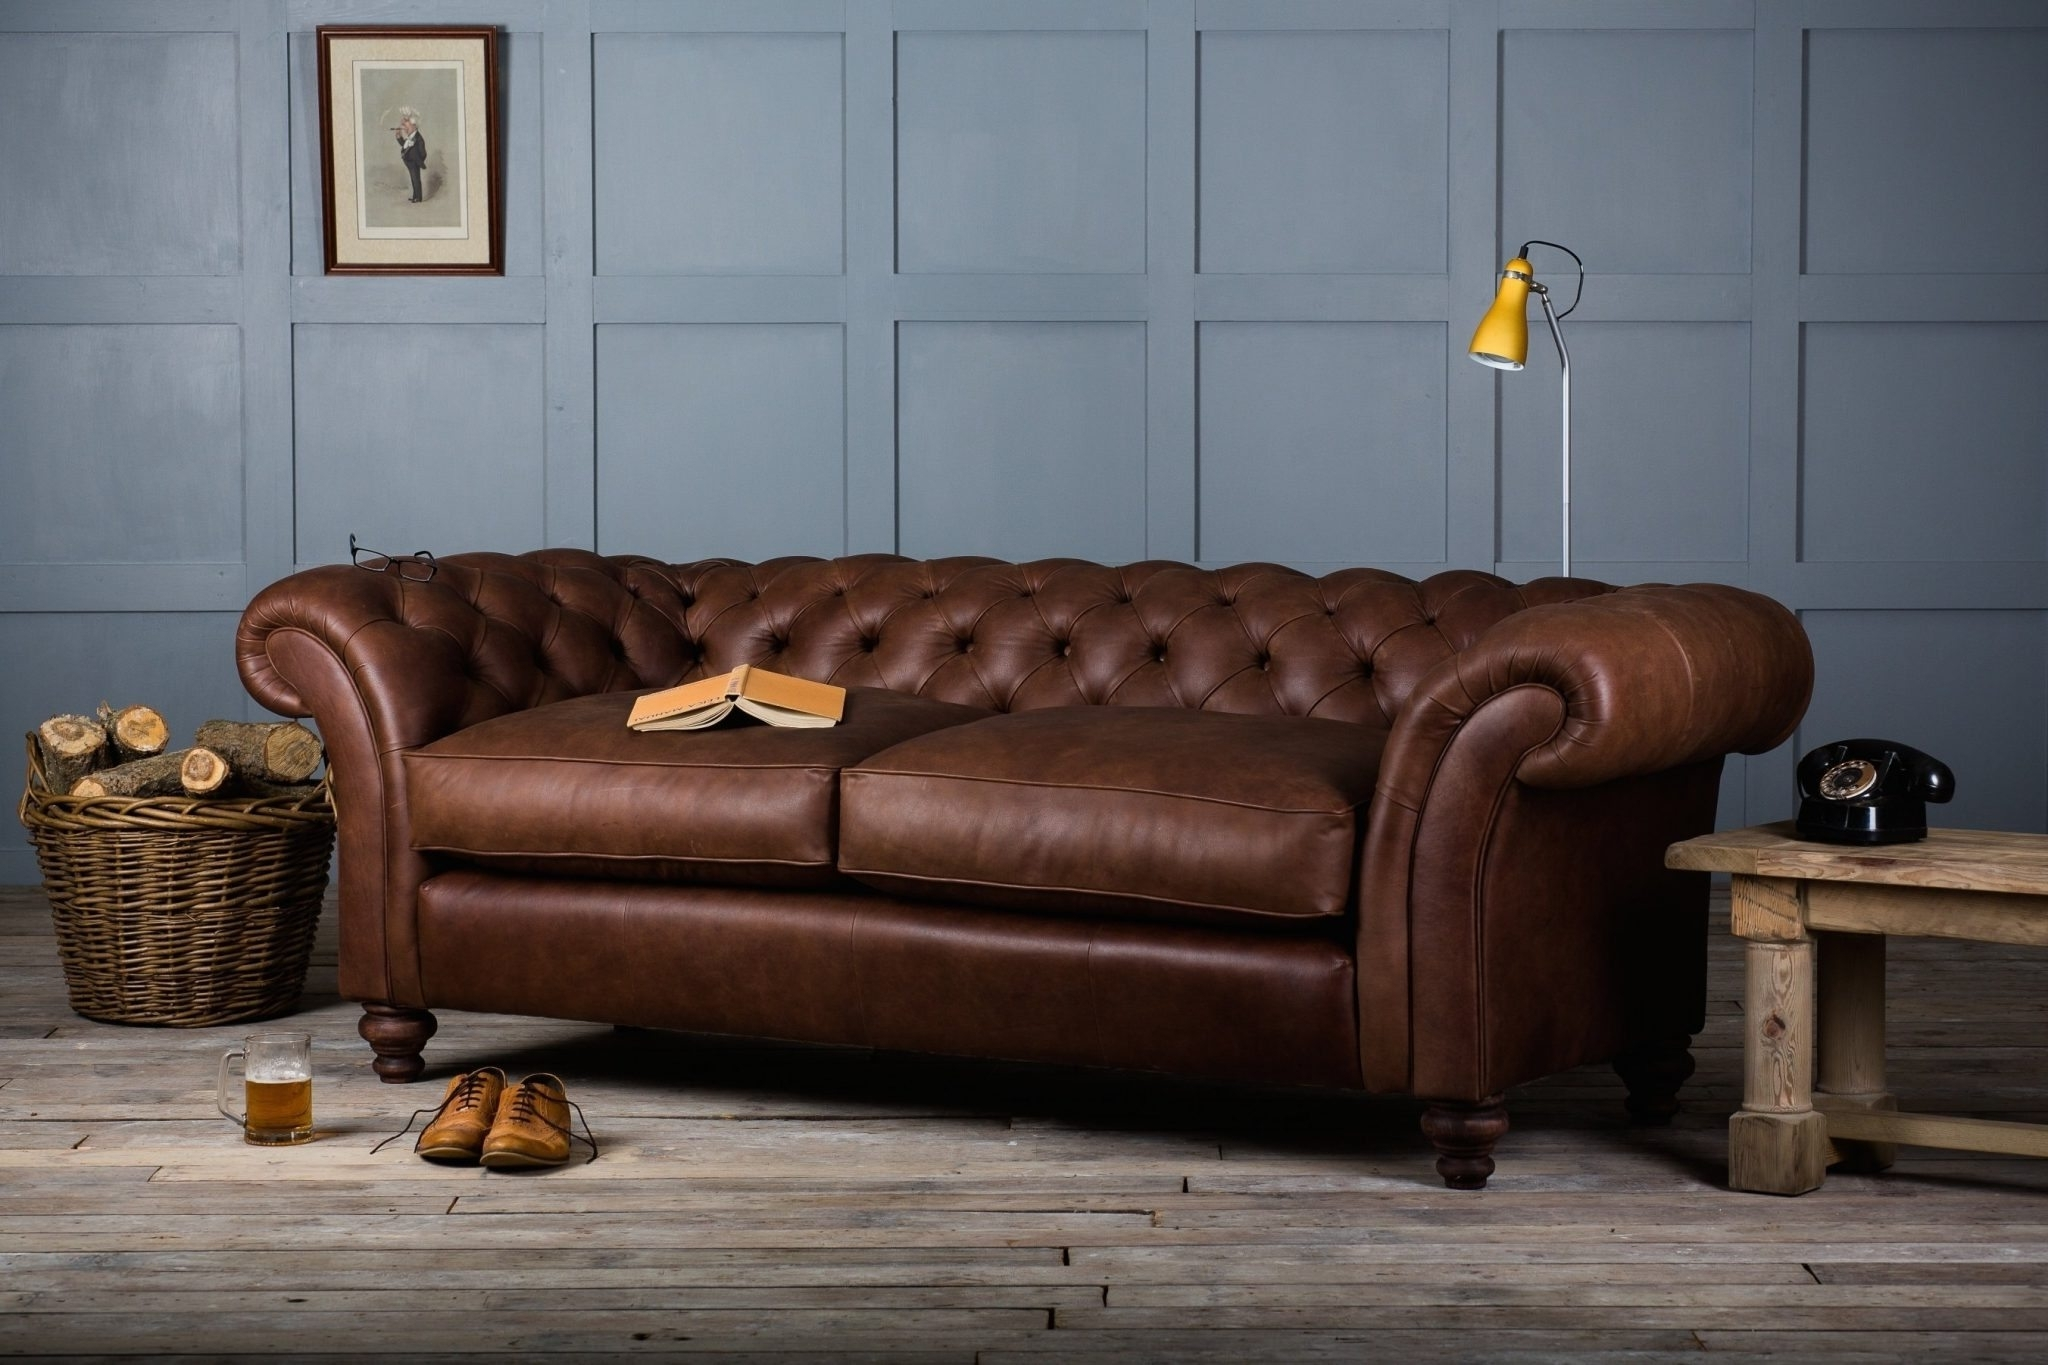 Full Grain Leather Sofas Regarding Most Recent Furniture: Tufted Full Grain Leather Sofa With Wooden Flooring And (View 8 of 20)